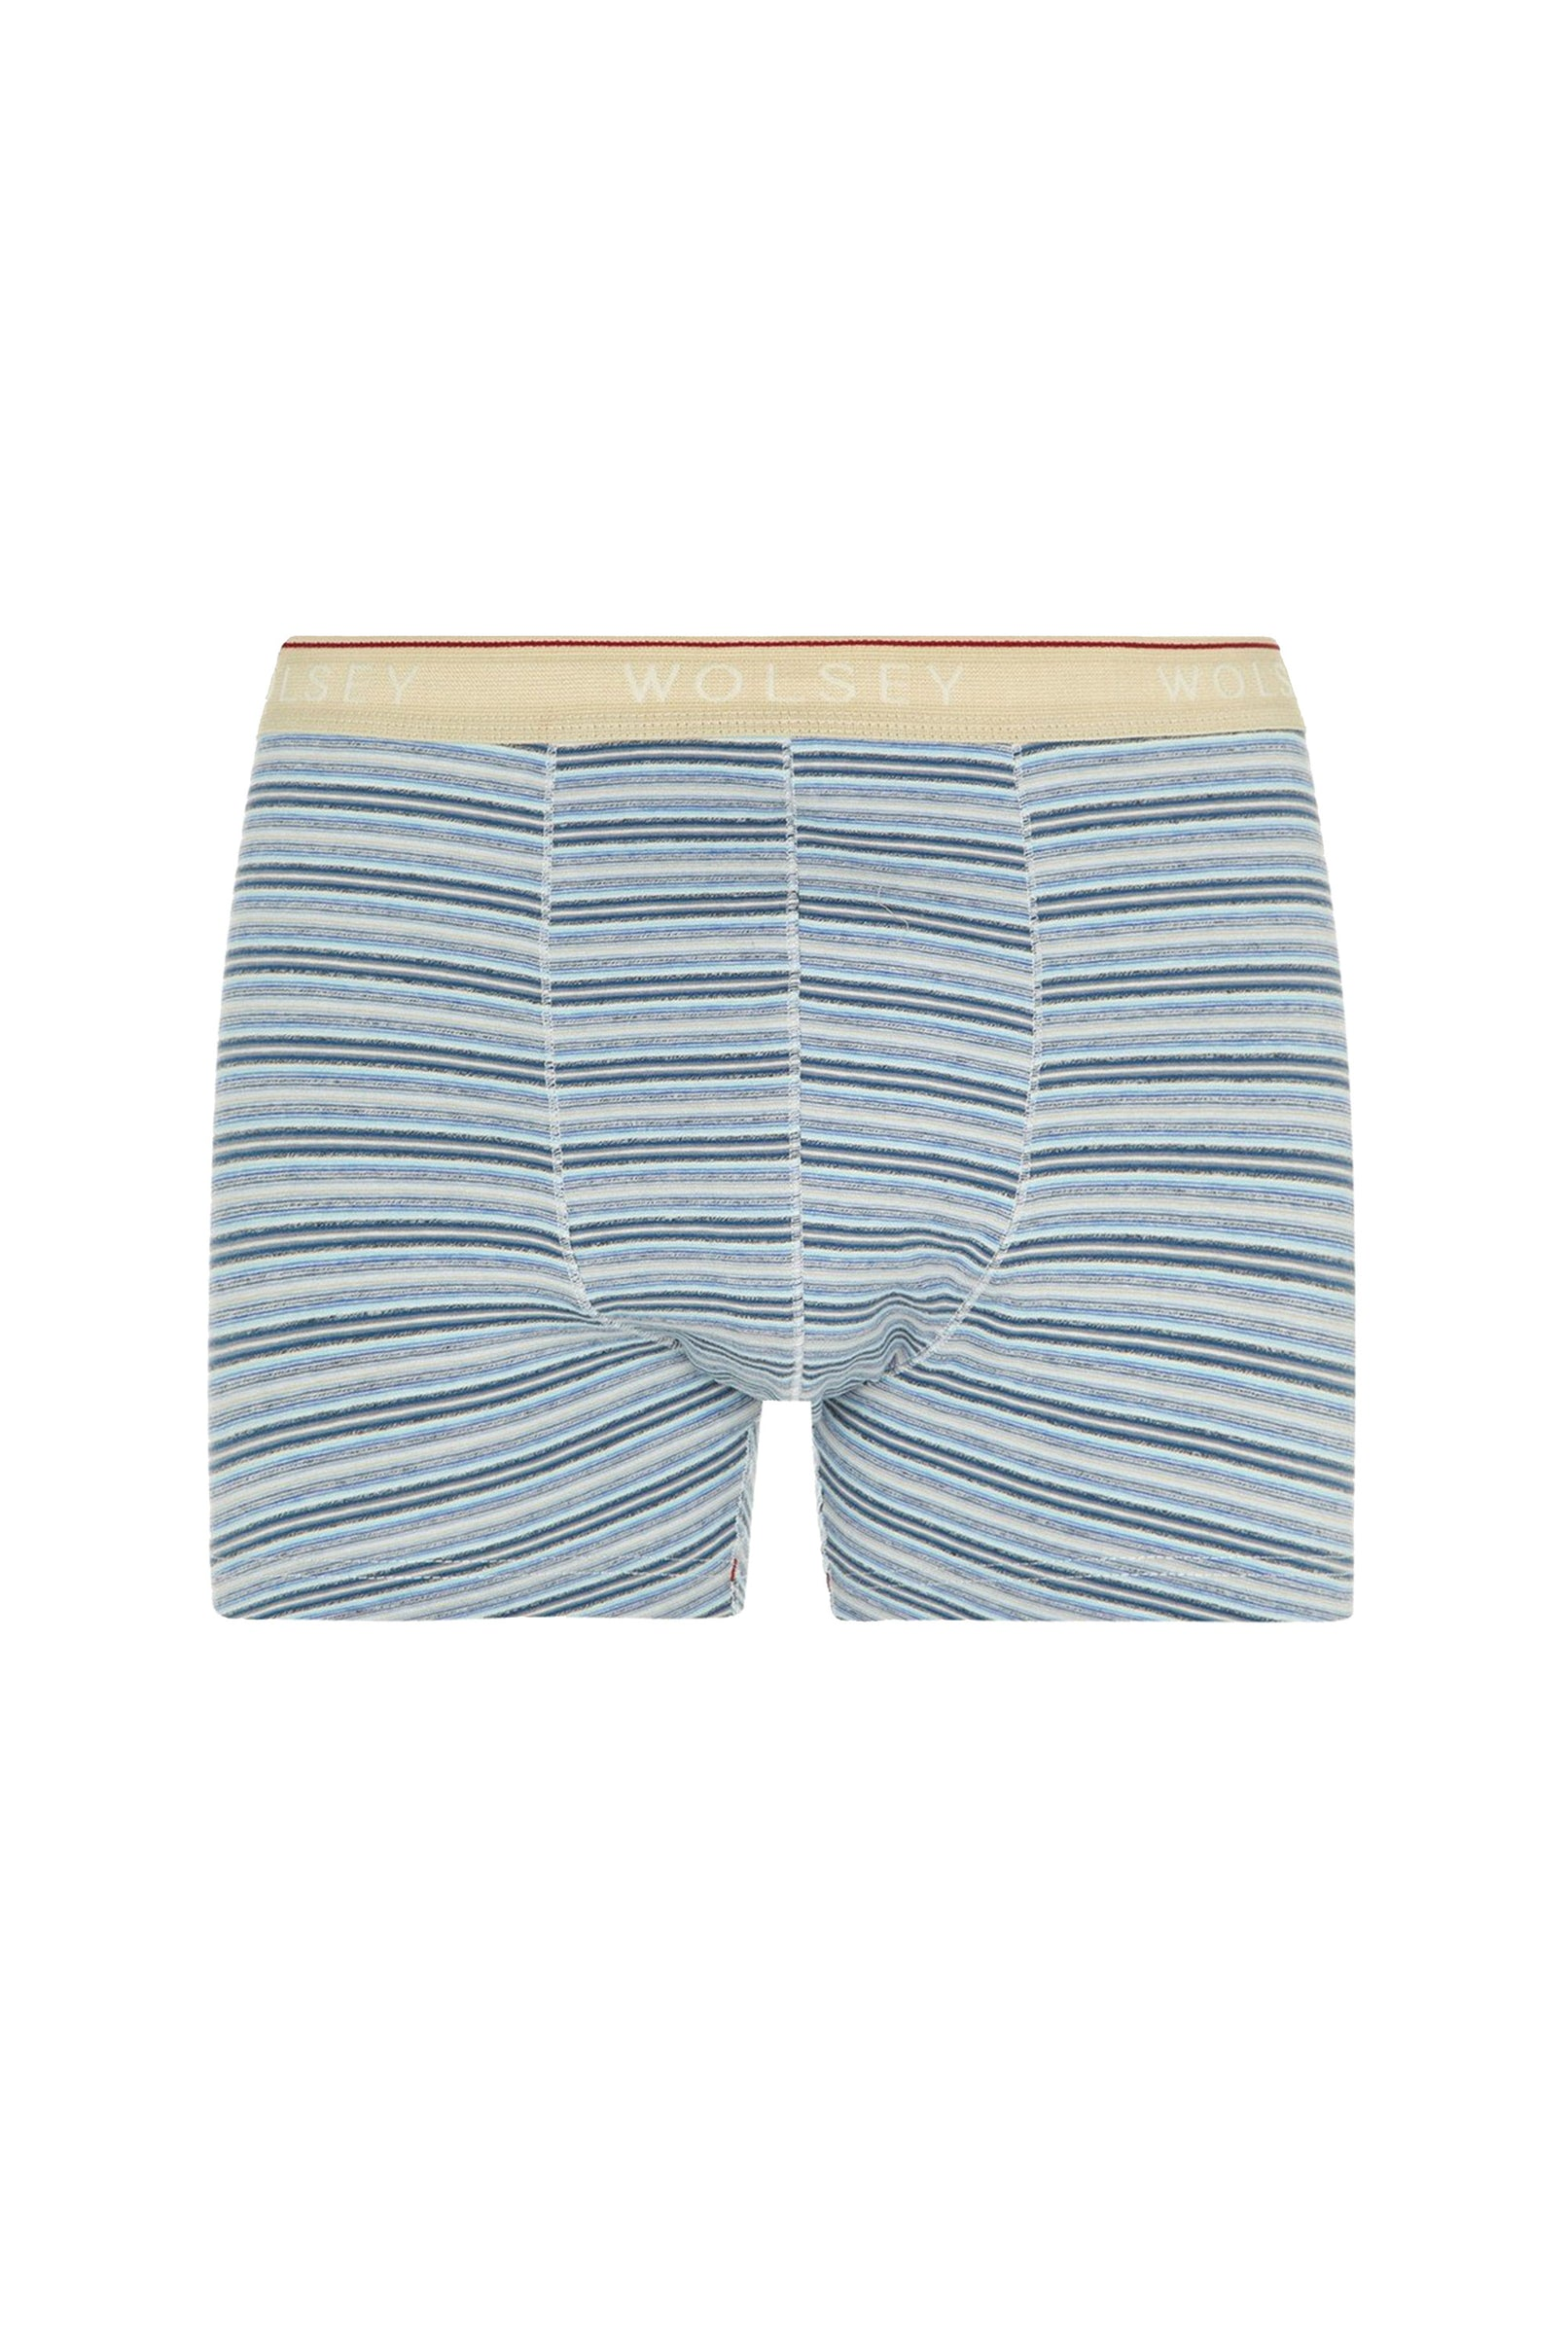 Blueprint Vintage Trunks